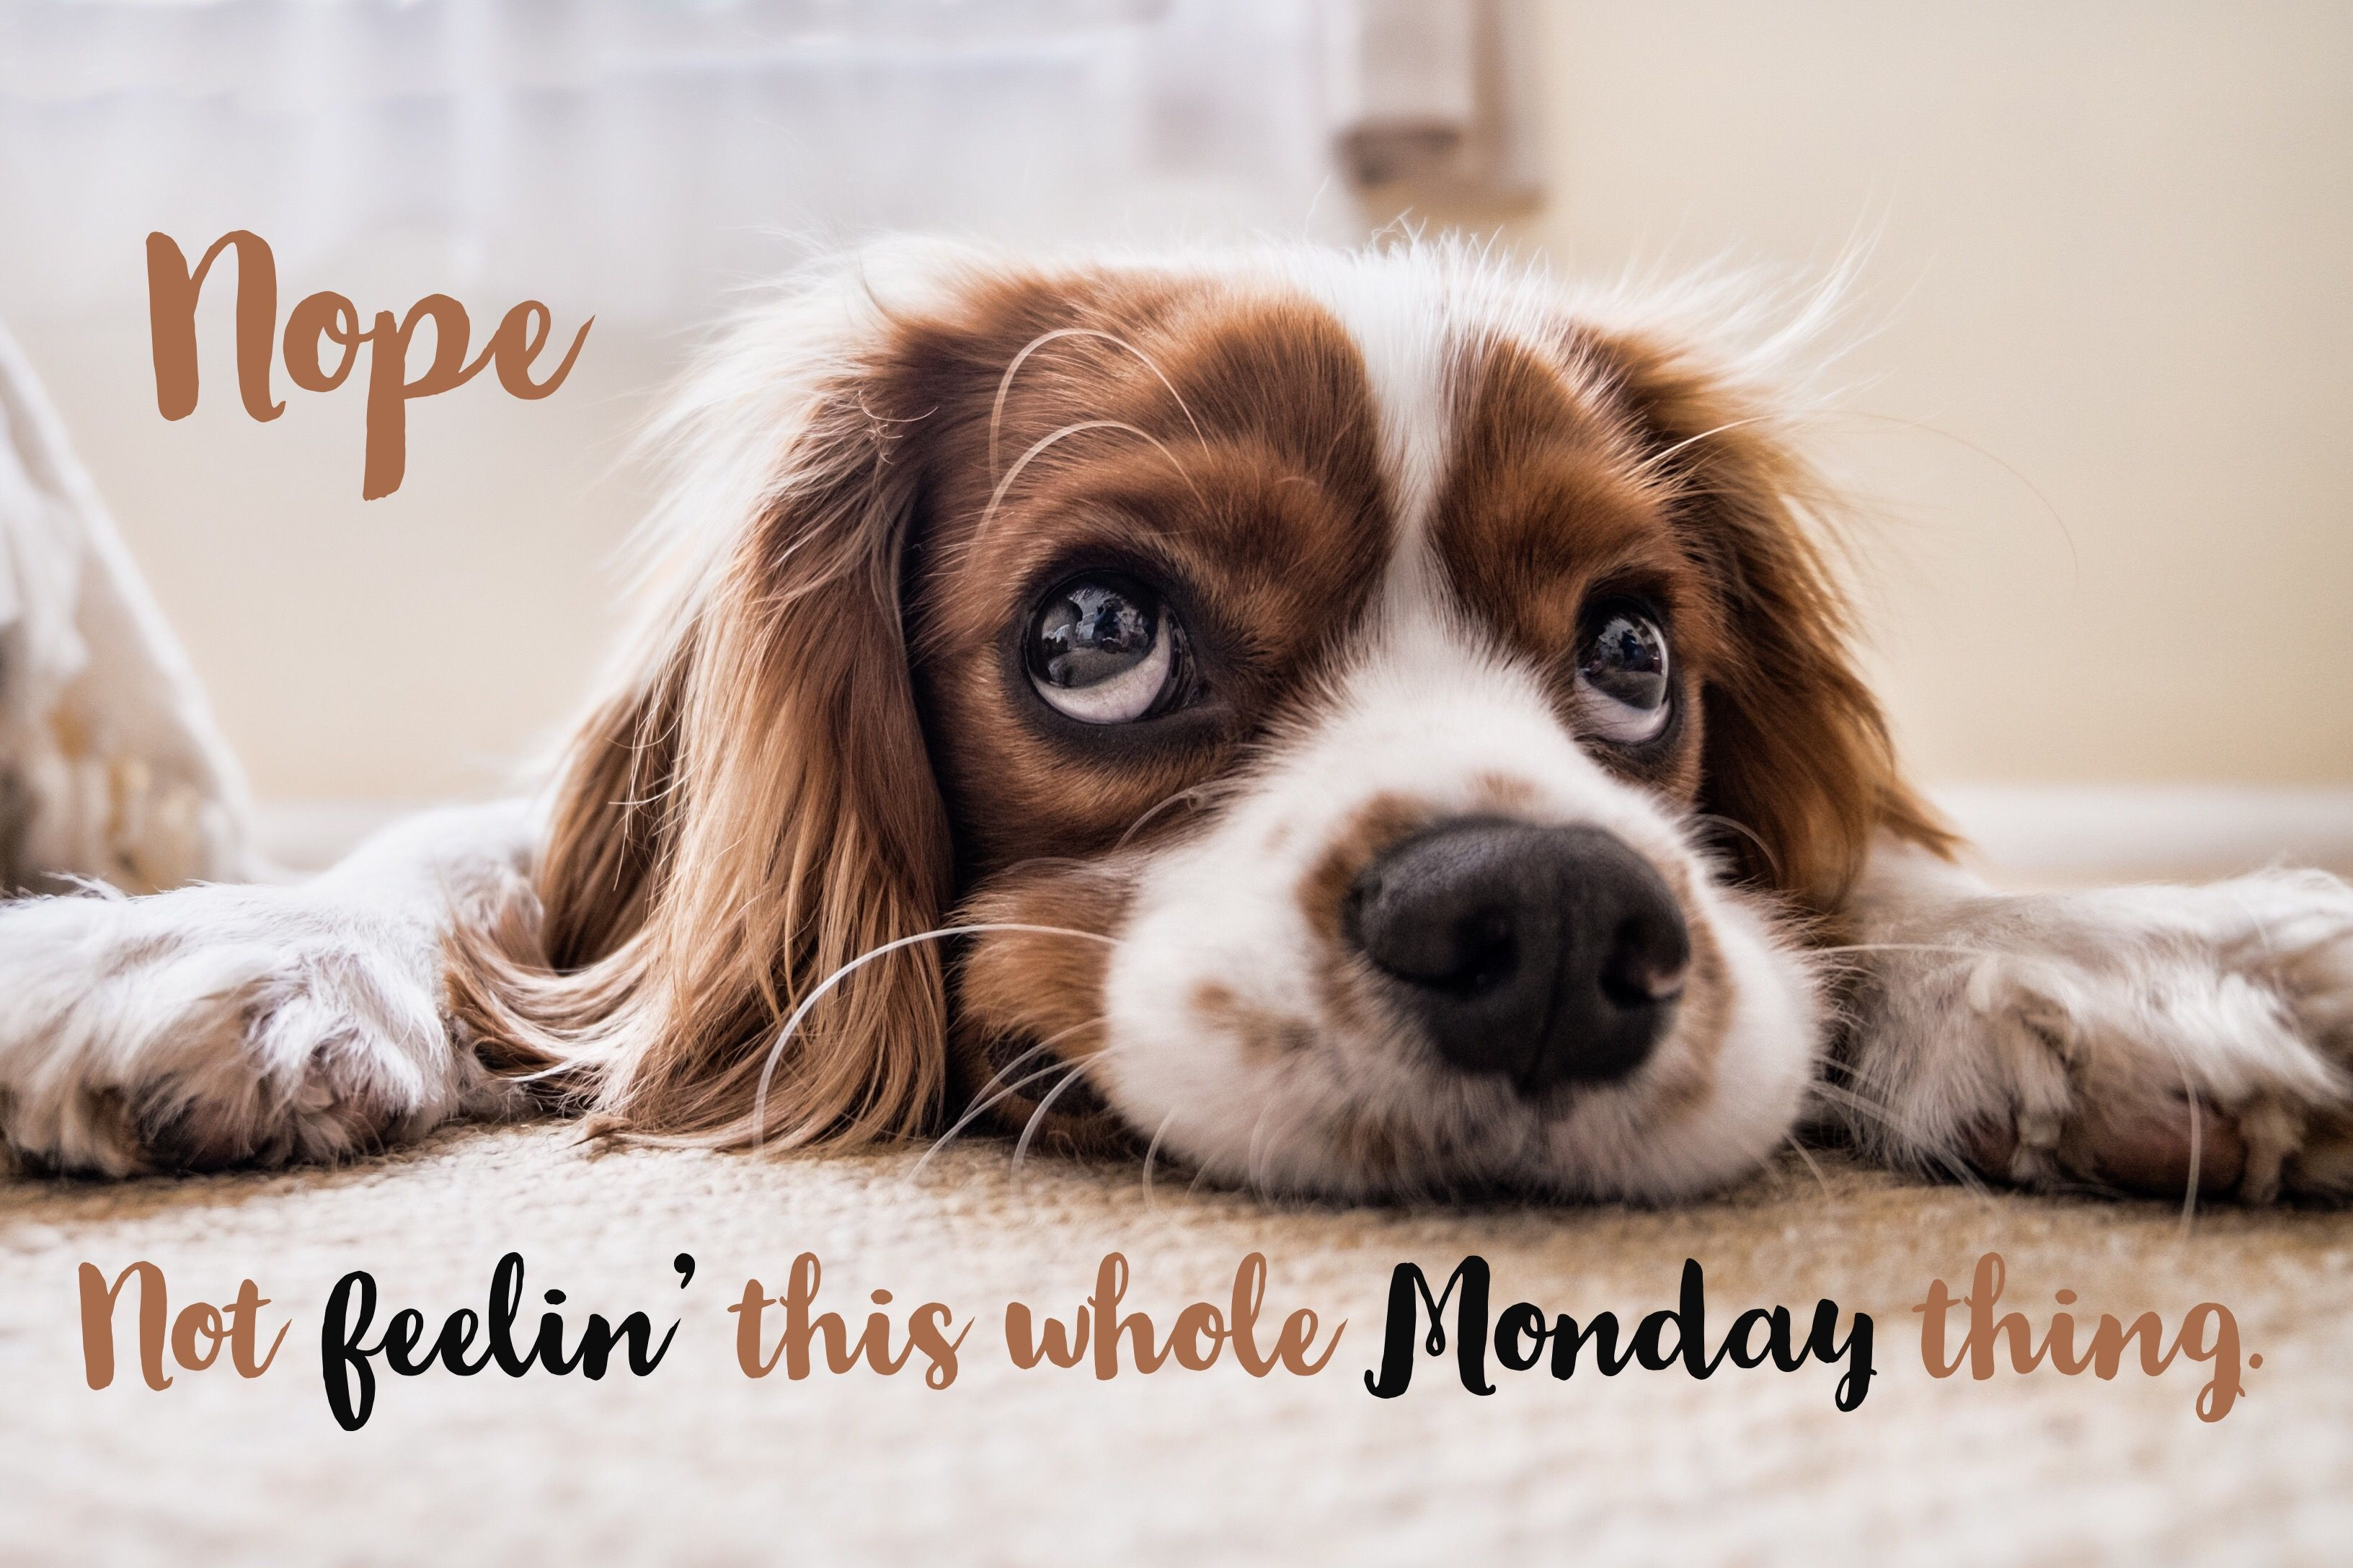 MondayMotivation Sure it's the beginning of the week, so